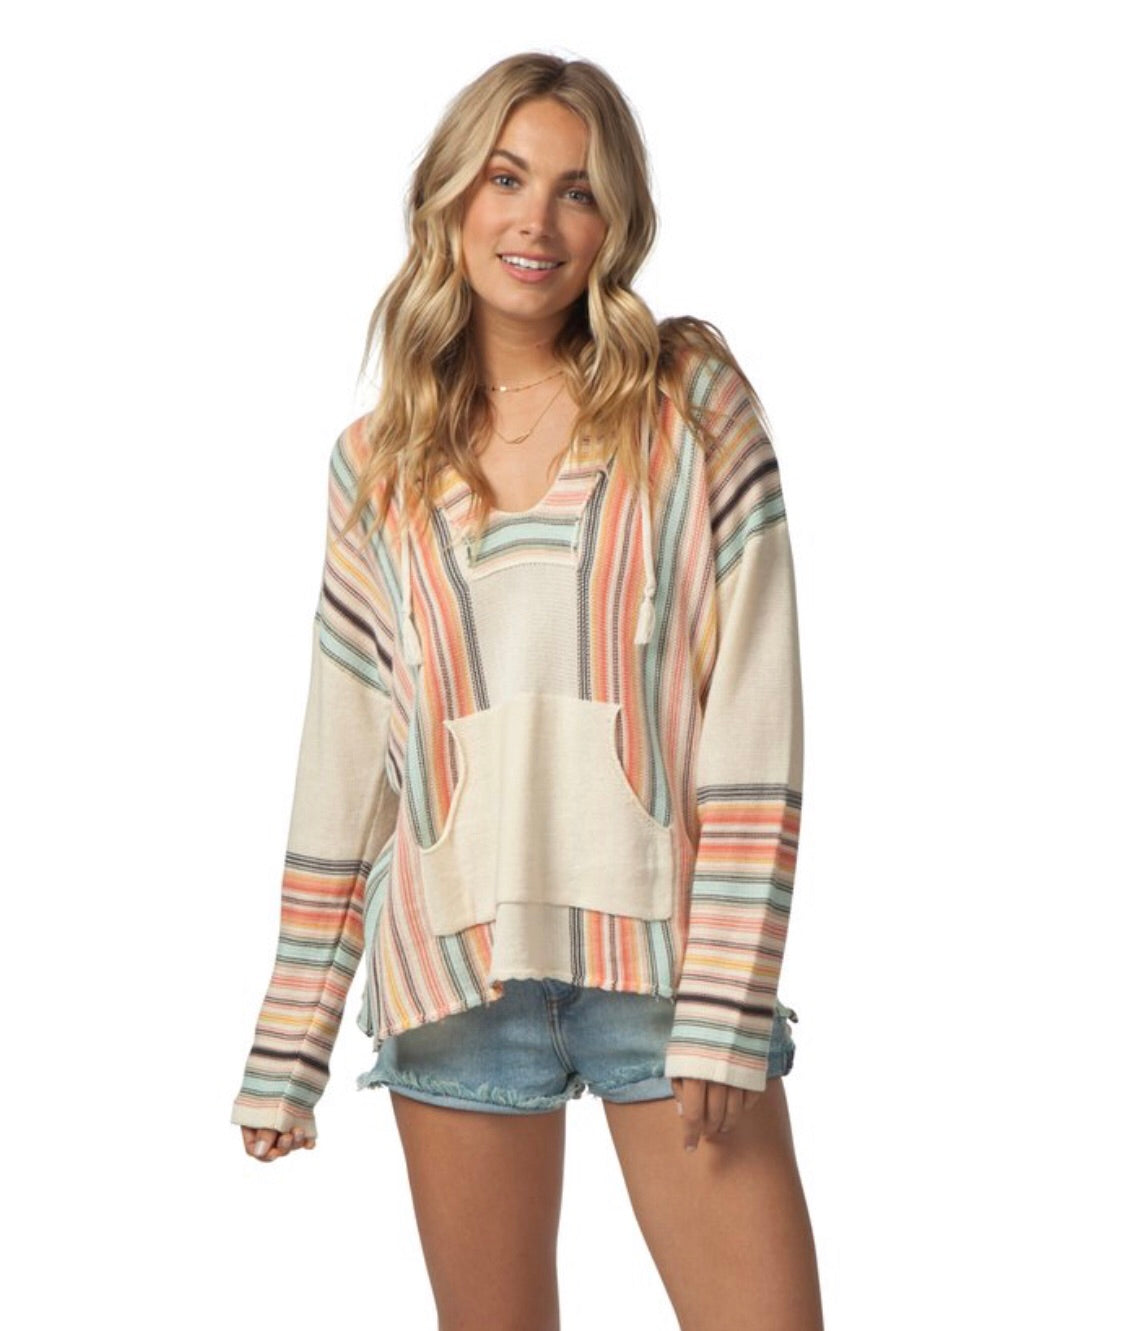 70c65c1222 Rip Curl Windswept Pullover - Innerlight Surf Shop